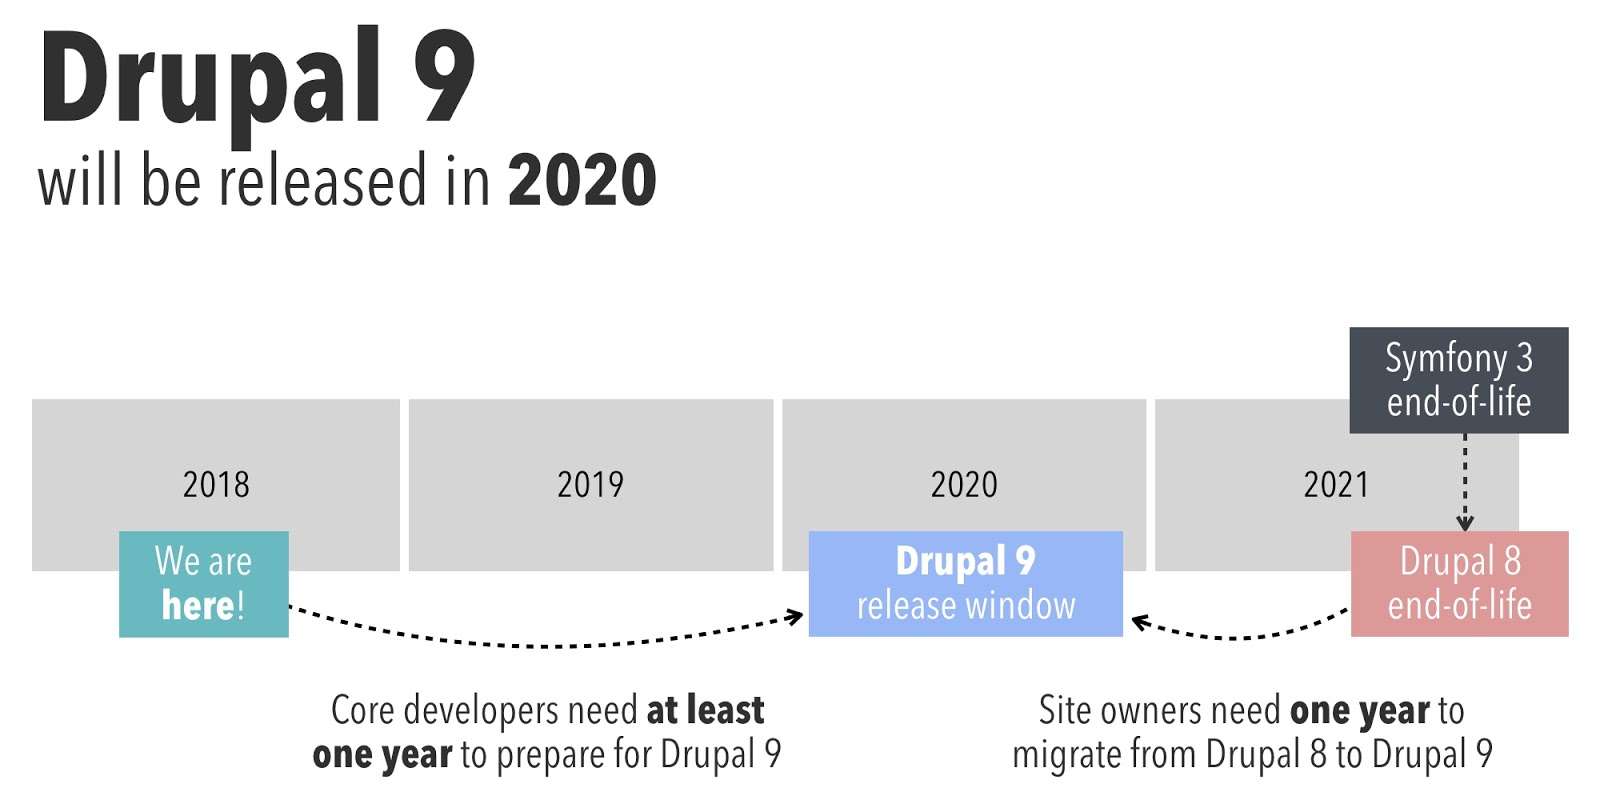 timeline: Drupal 9 will be released in 2020. Drupal 8 end of life is planned for 2021